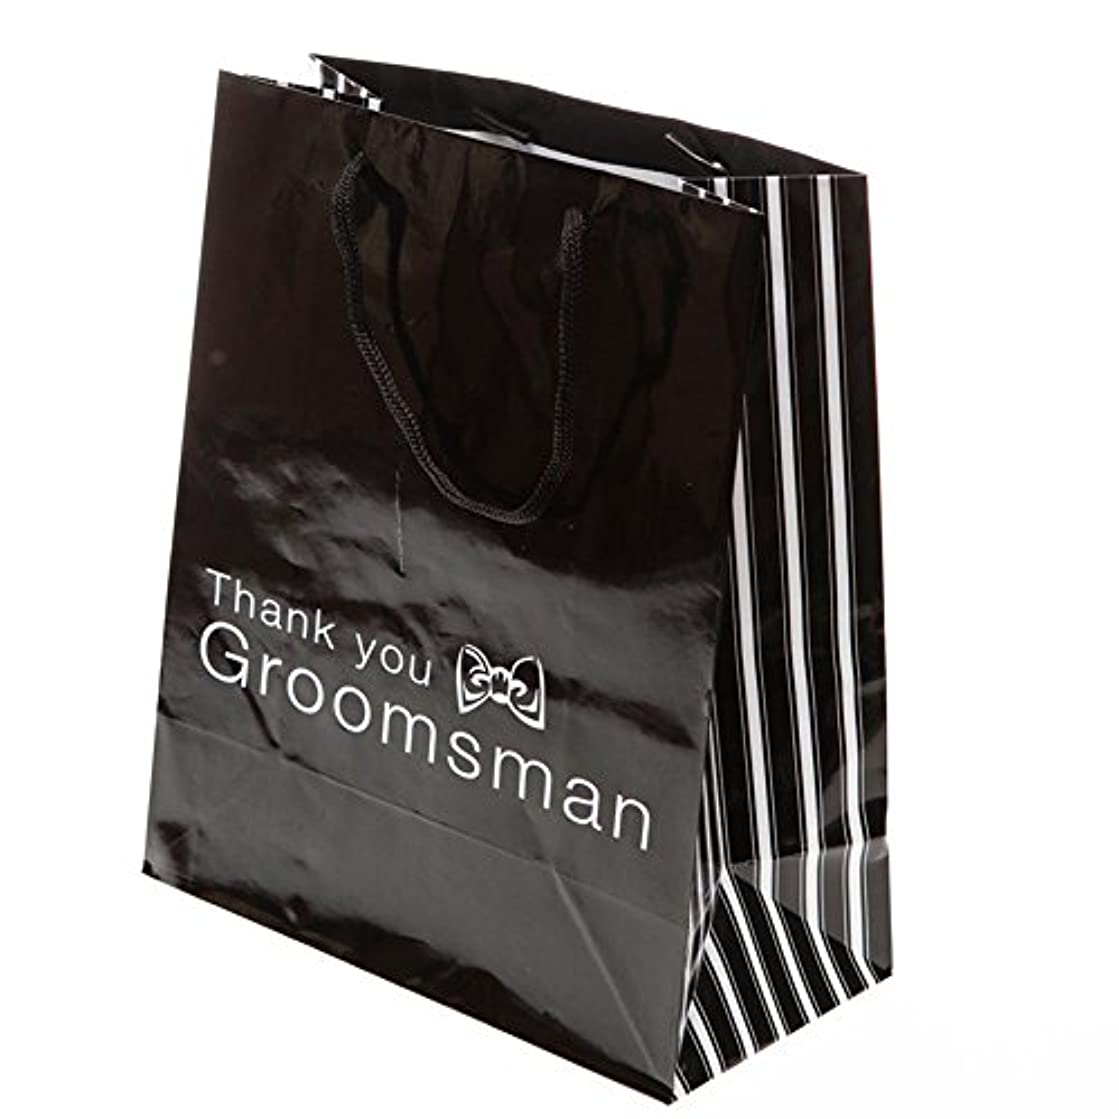 Thank You Groomsman Gift Bags